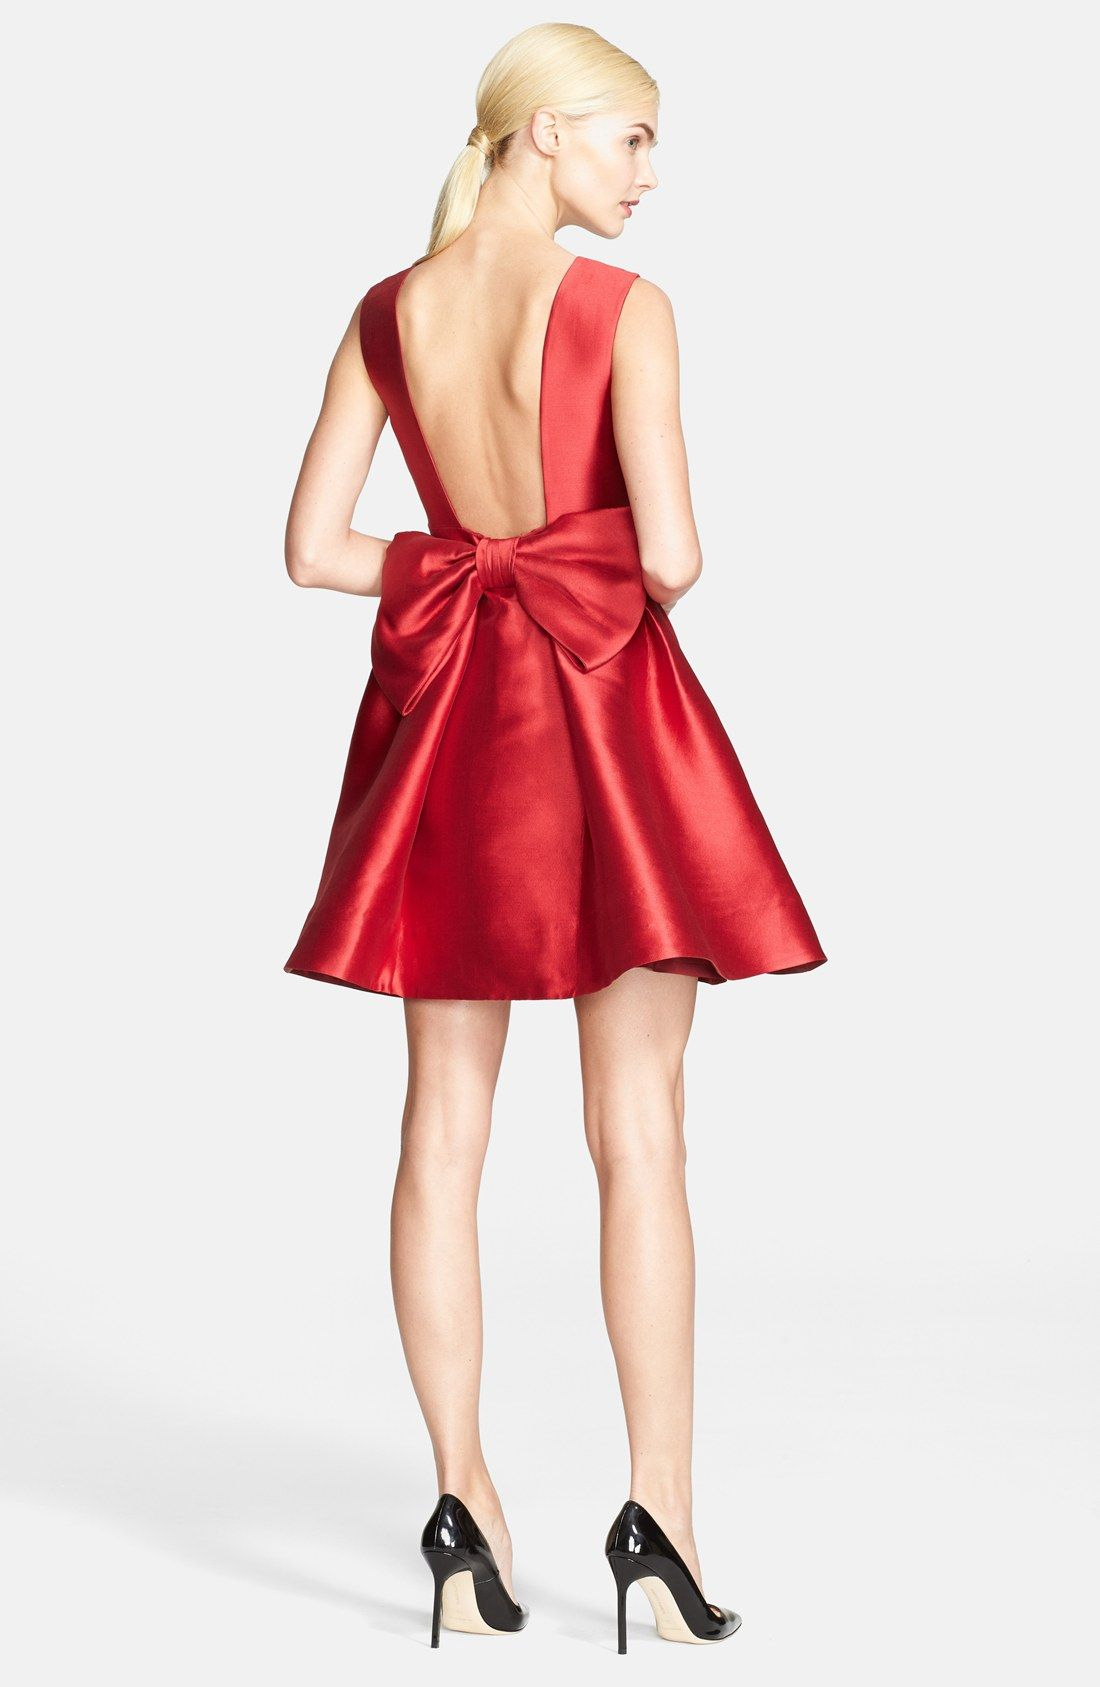 df9d869be38 Ooh la la! The low back finished with a bow is breathtaking. This red Kate  Spade fit   flare minidress is perfect for party season.